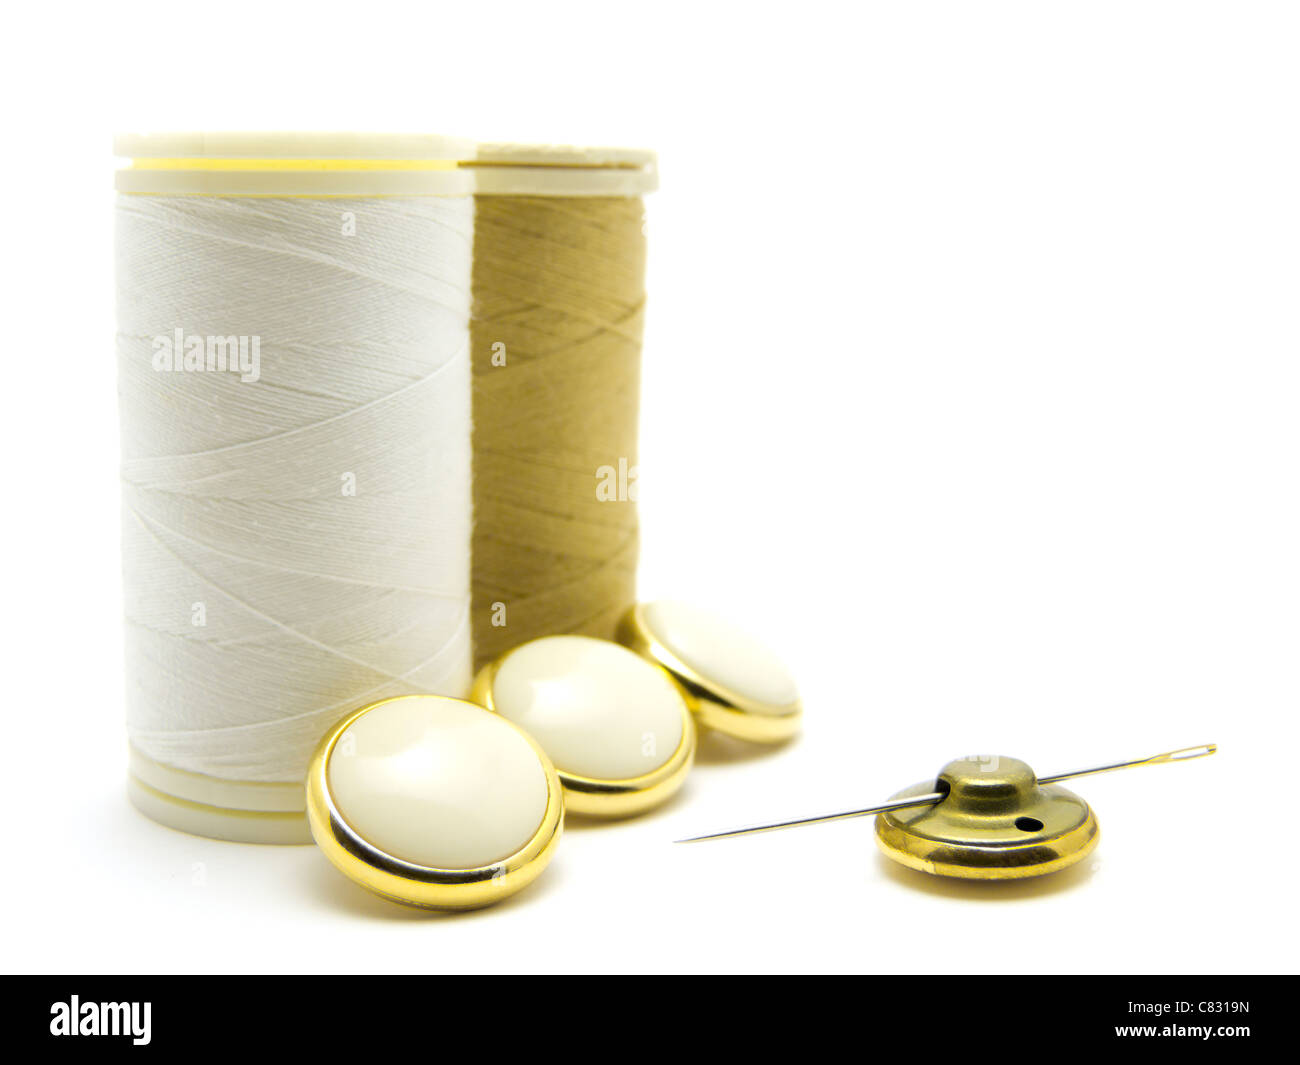 Sewing Items White Gold - Stock Image